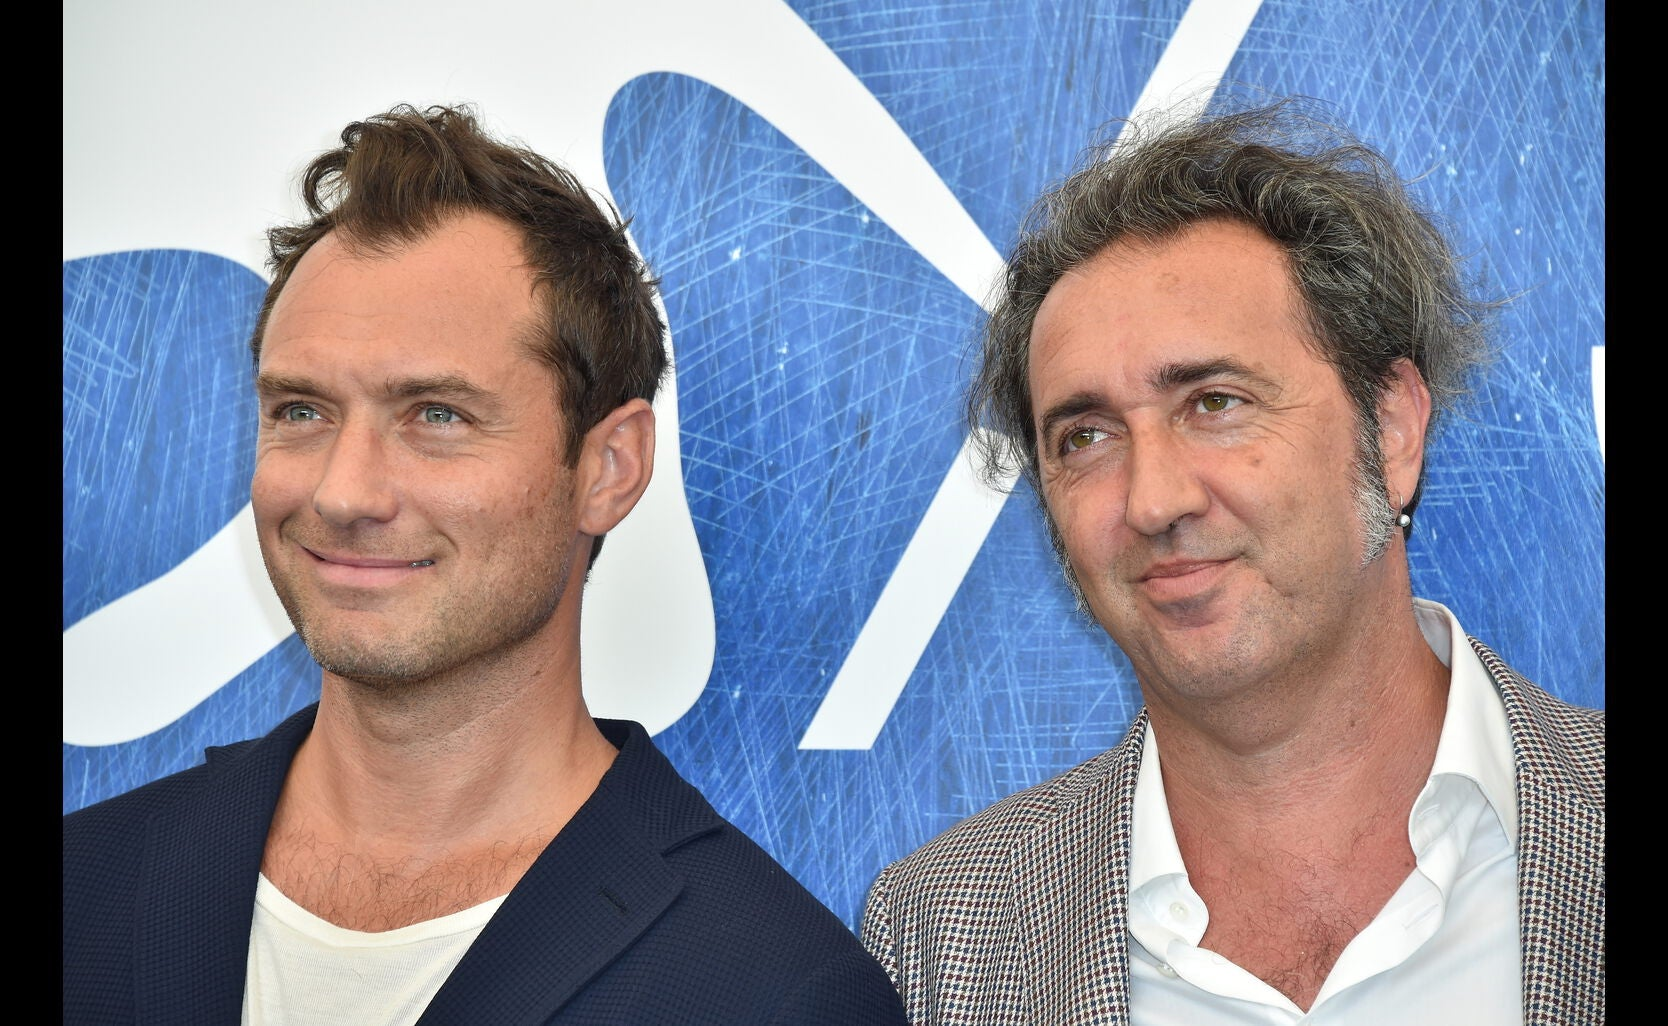 Jude Law, Golden Globe nominee, and director Paolo Sorrentino, Golden Gllobe winner